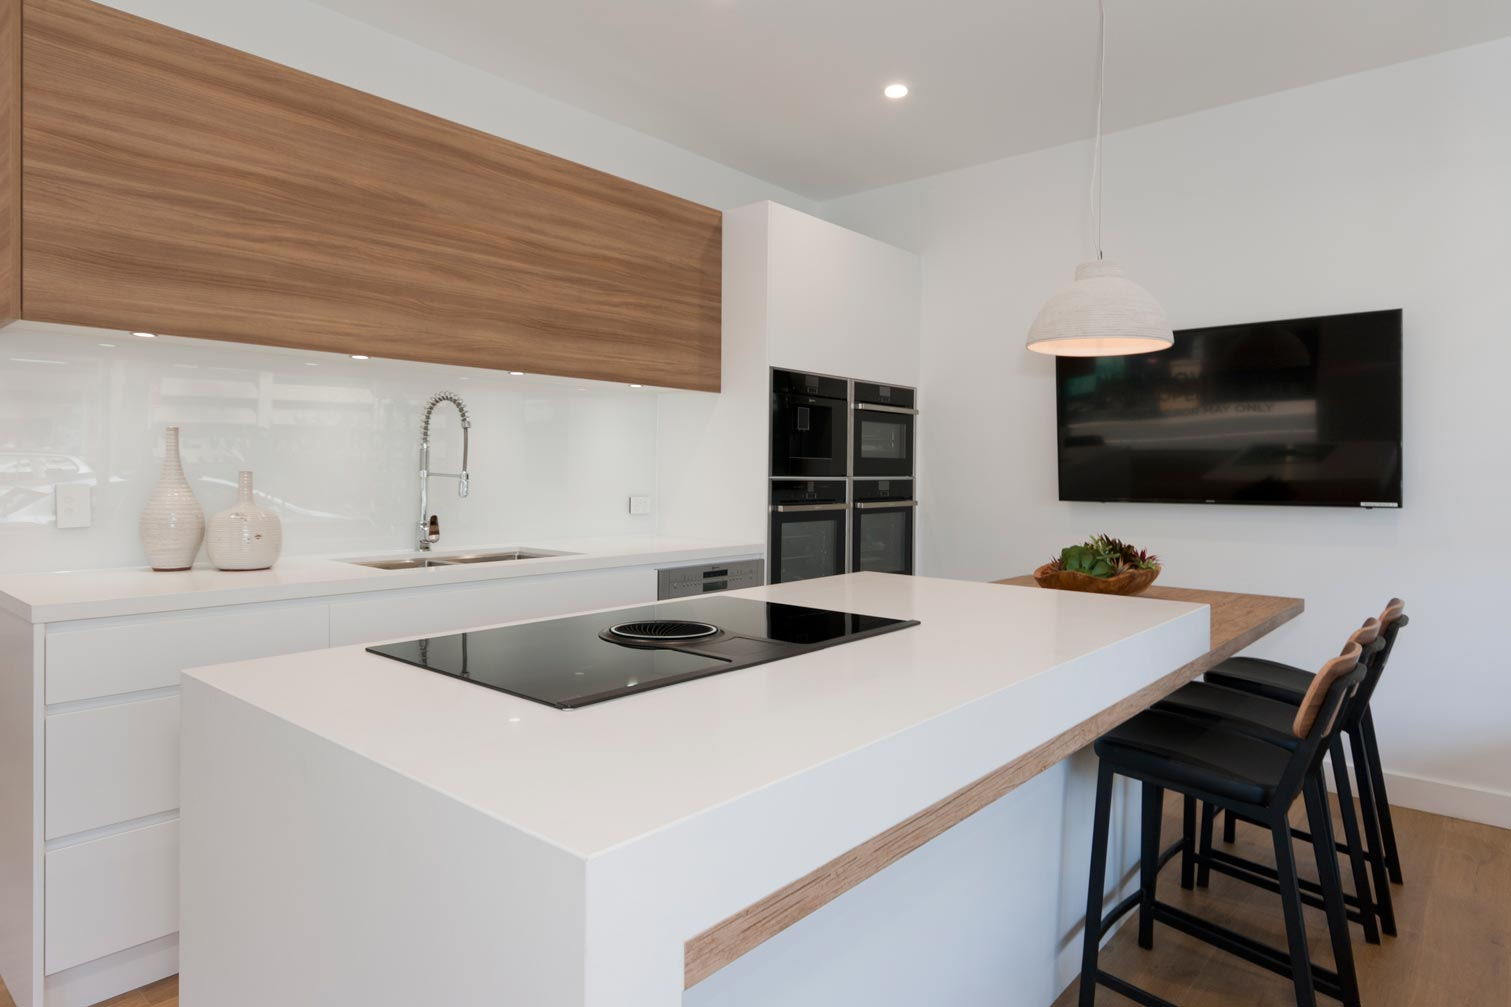 Uncategorized Modern Kitchen Designs Australia kitchen ideas image gallery premier kitchens australia modern scandinavian design featuring caesarstone pure white neolith la boheme benchtop dulux whisper